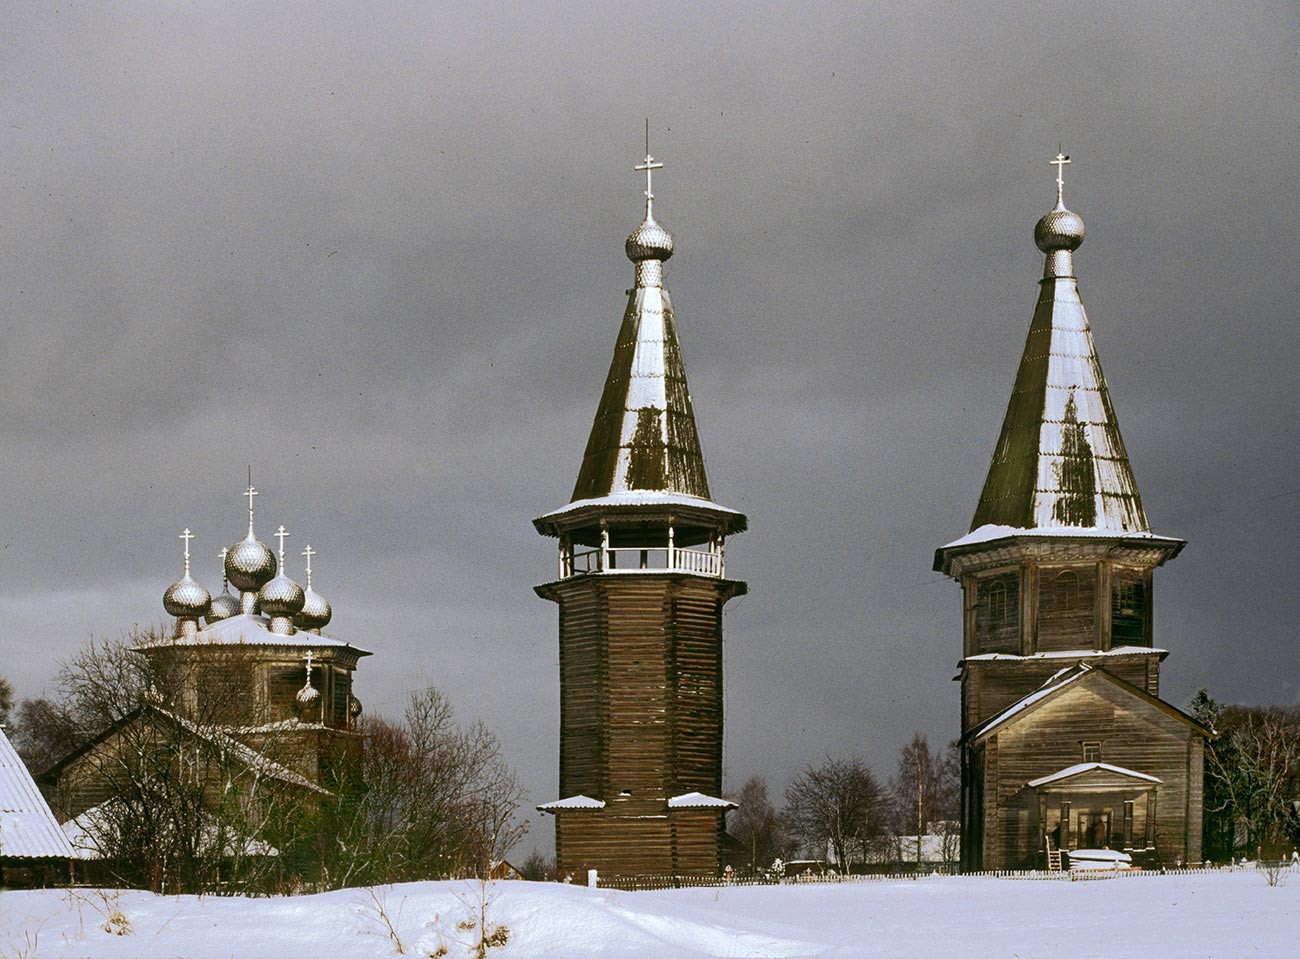 Lyadiny. From left: Epiphany Church, bell tower, Intercession Church. West view. (Bell tower & Intercession Church destroyed by fire, May 5, 2013.) February 28, 1998